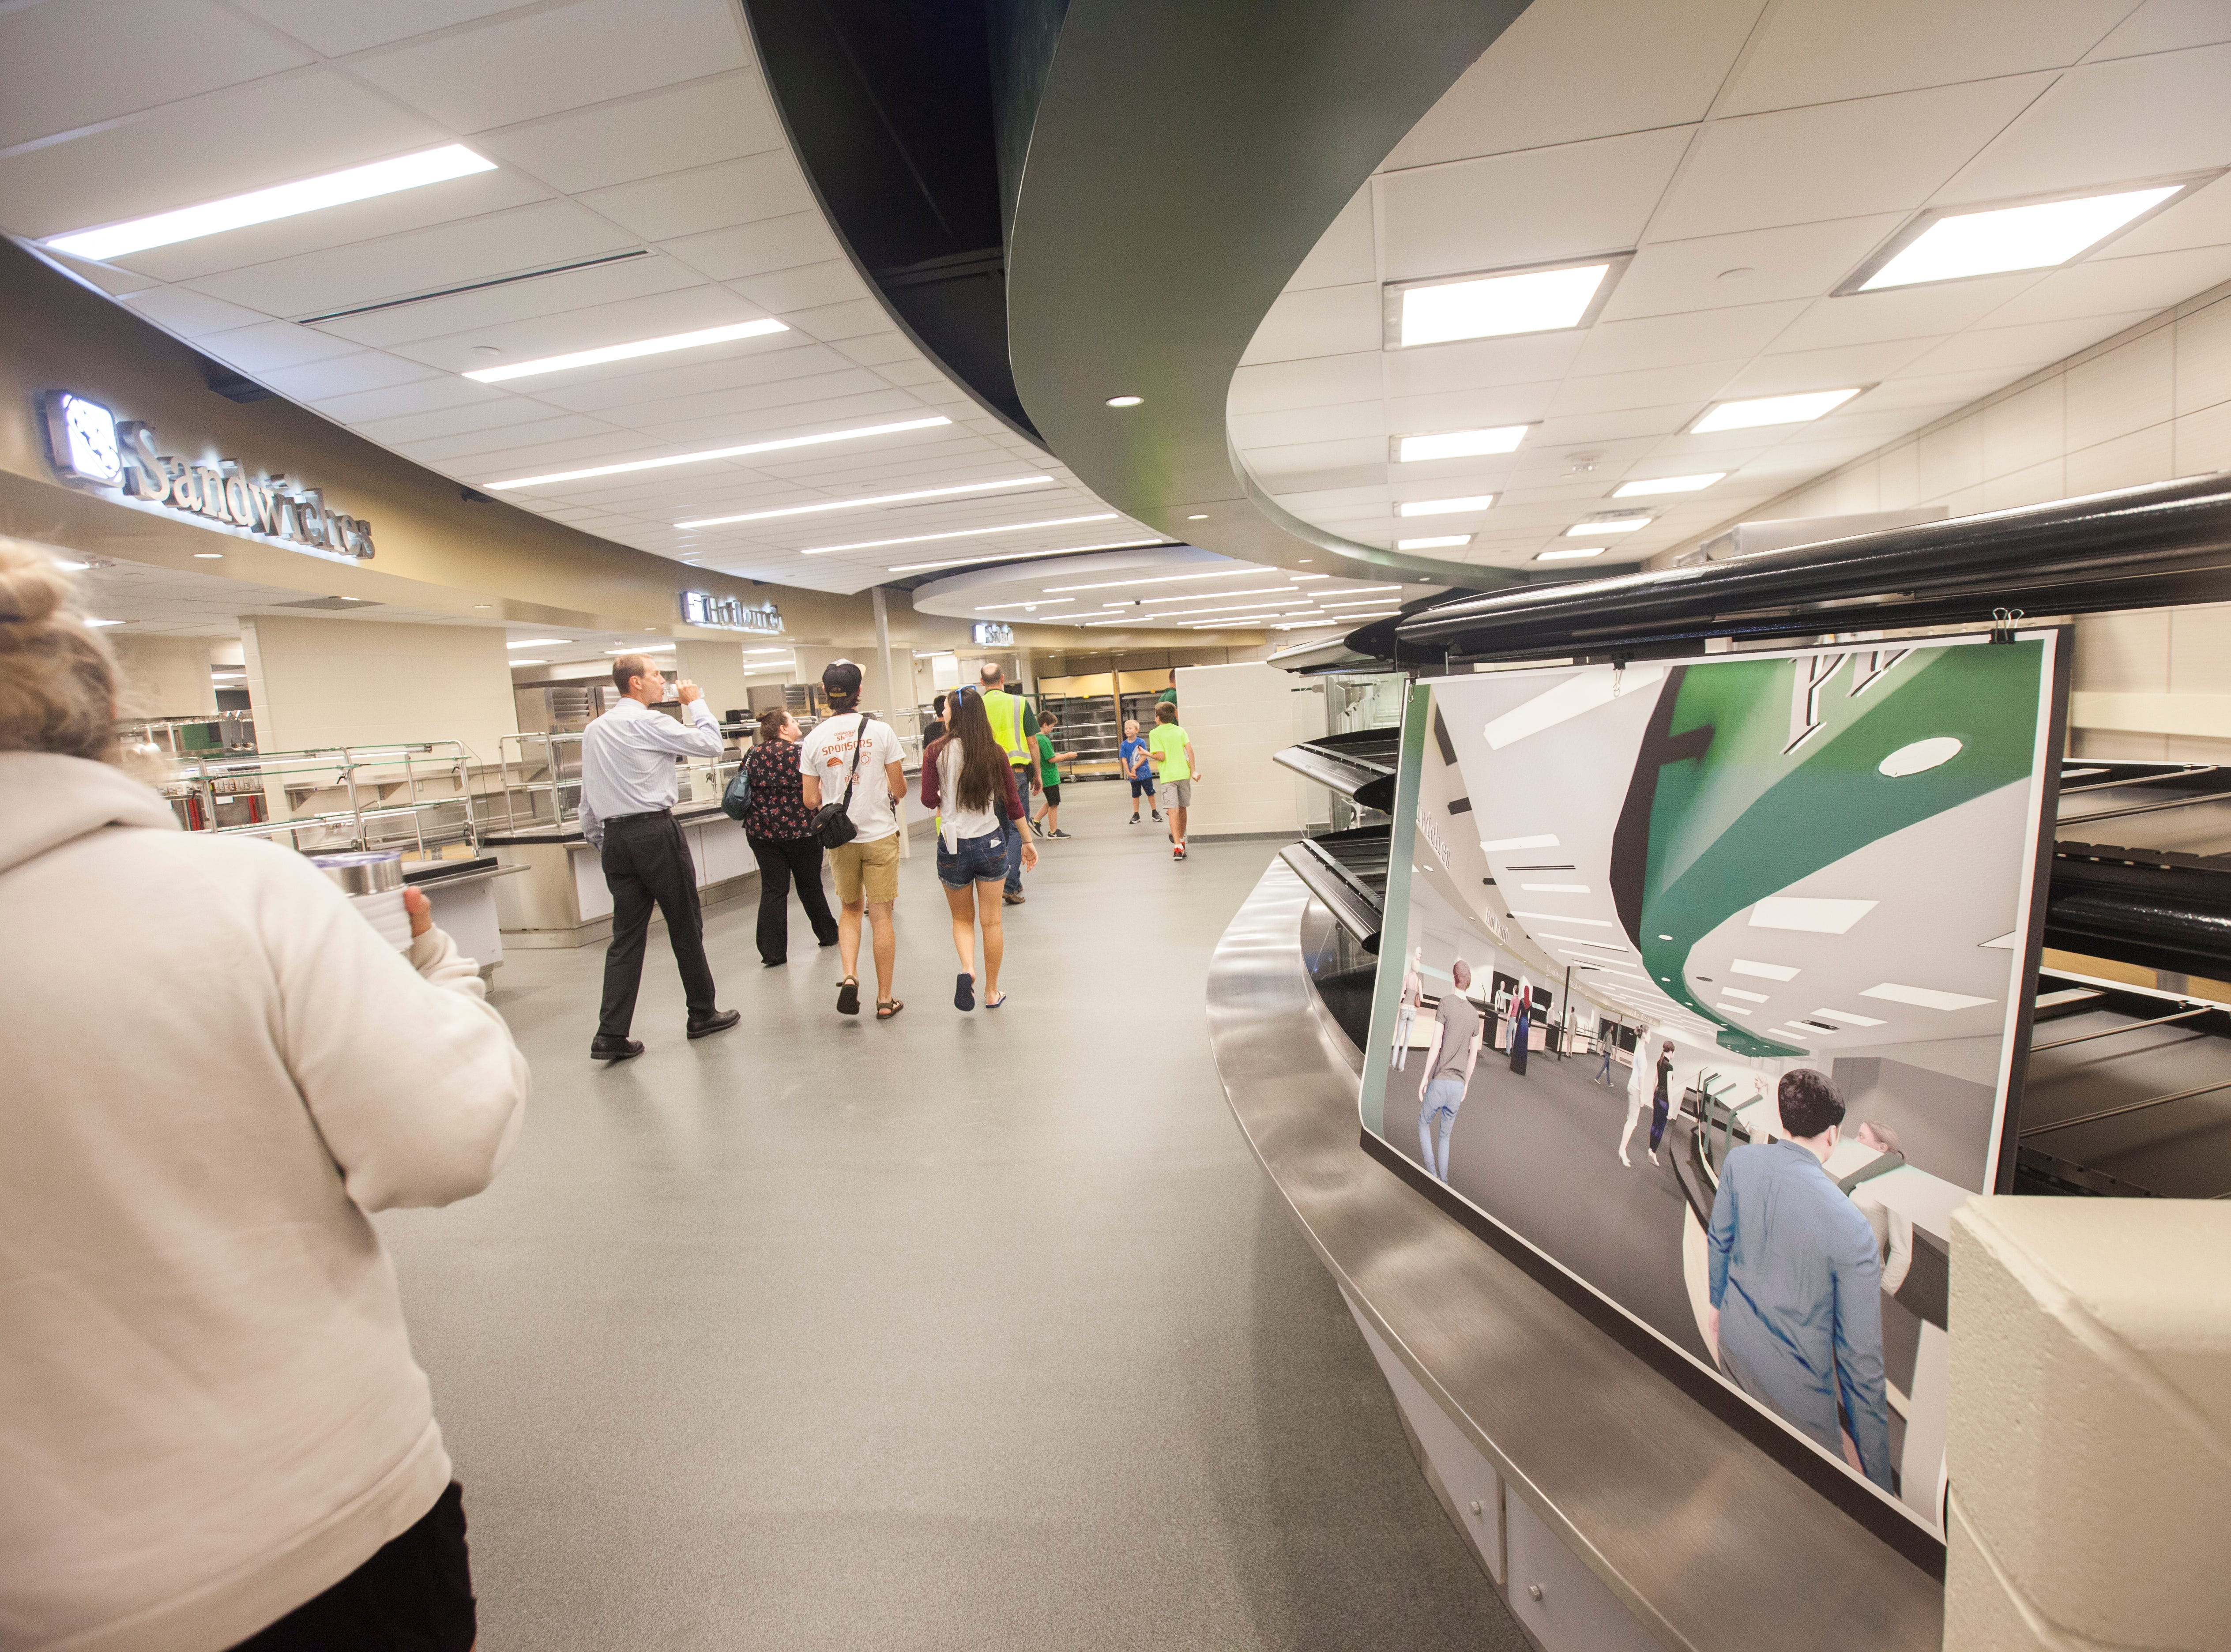 Community members walk through a cafeteria line during a tour of a recently completed addition to facilities on Wednesday, Aug. 15, 2018, at West High School in Iowa City. The addition was the first phase of renovations set to take place for the building that opened in 1968.